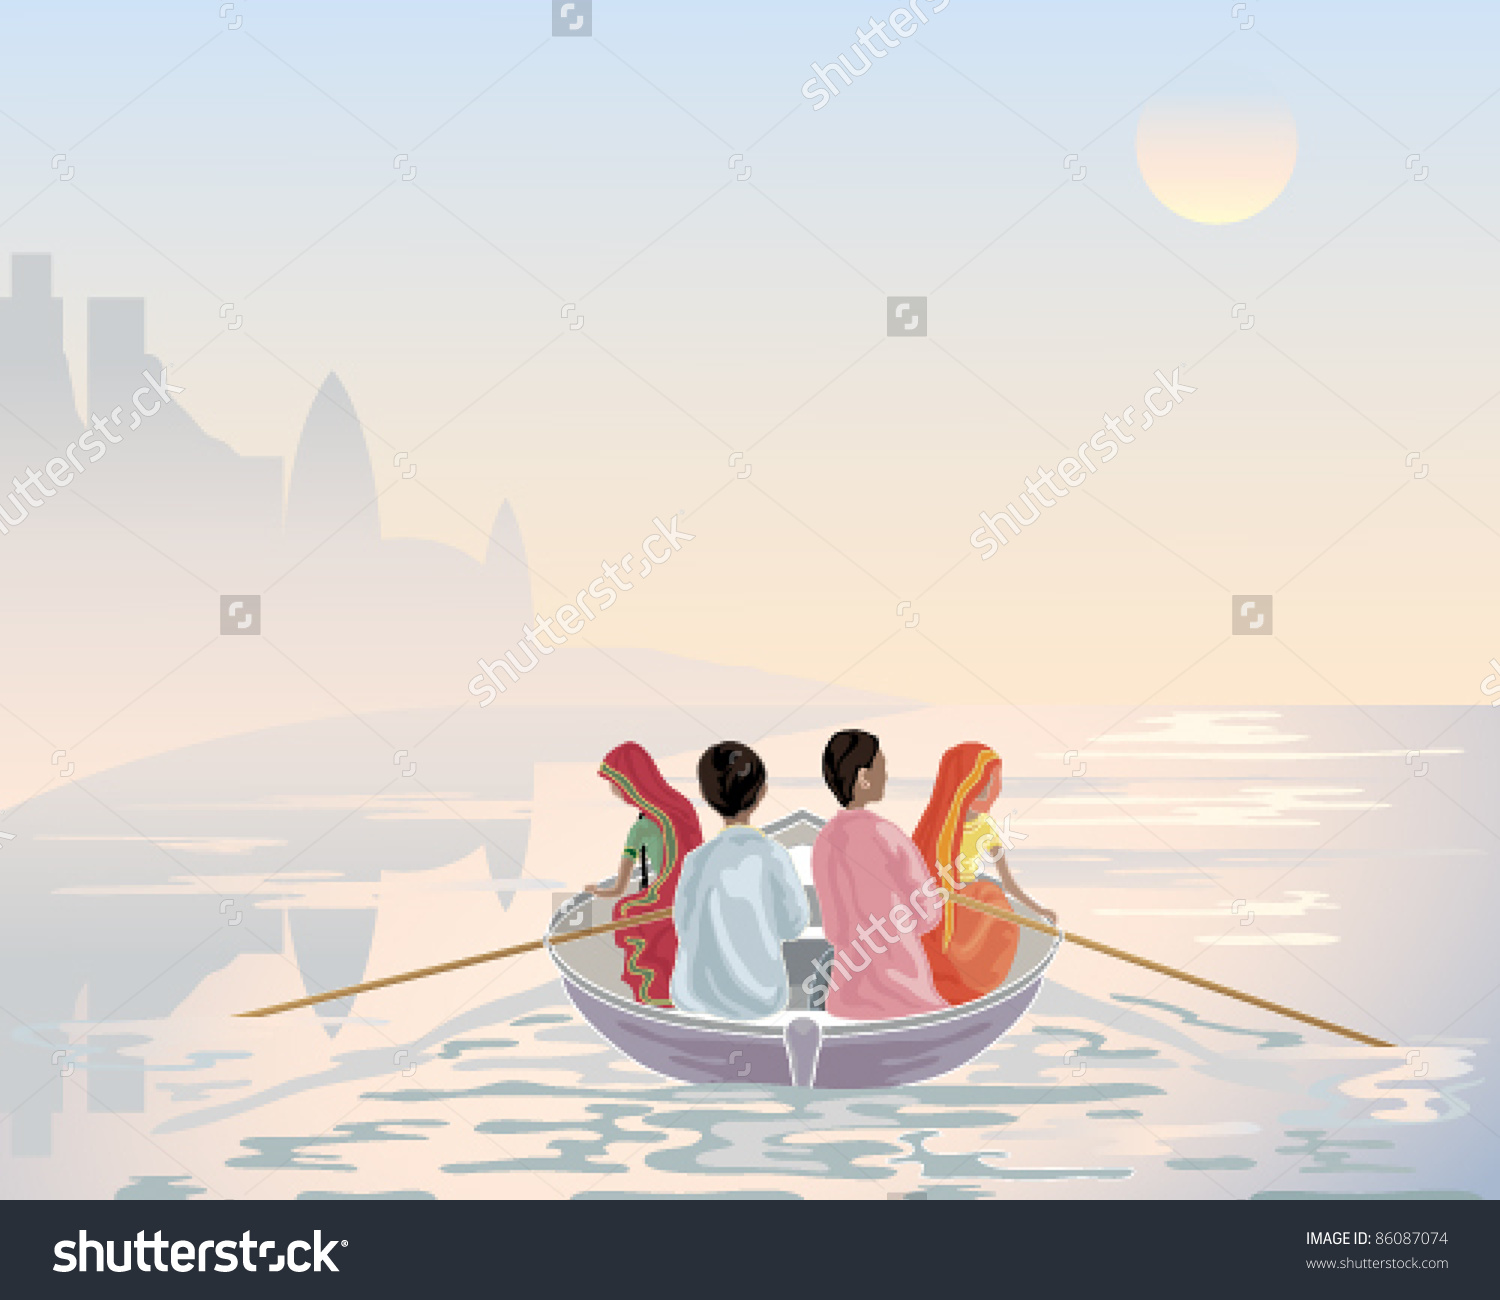 Ganga river clipart vector library library Ganga river clipart - ClipartFest vector library library